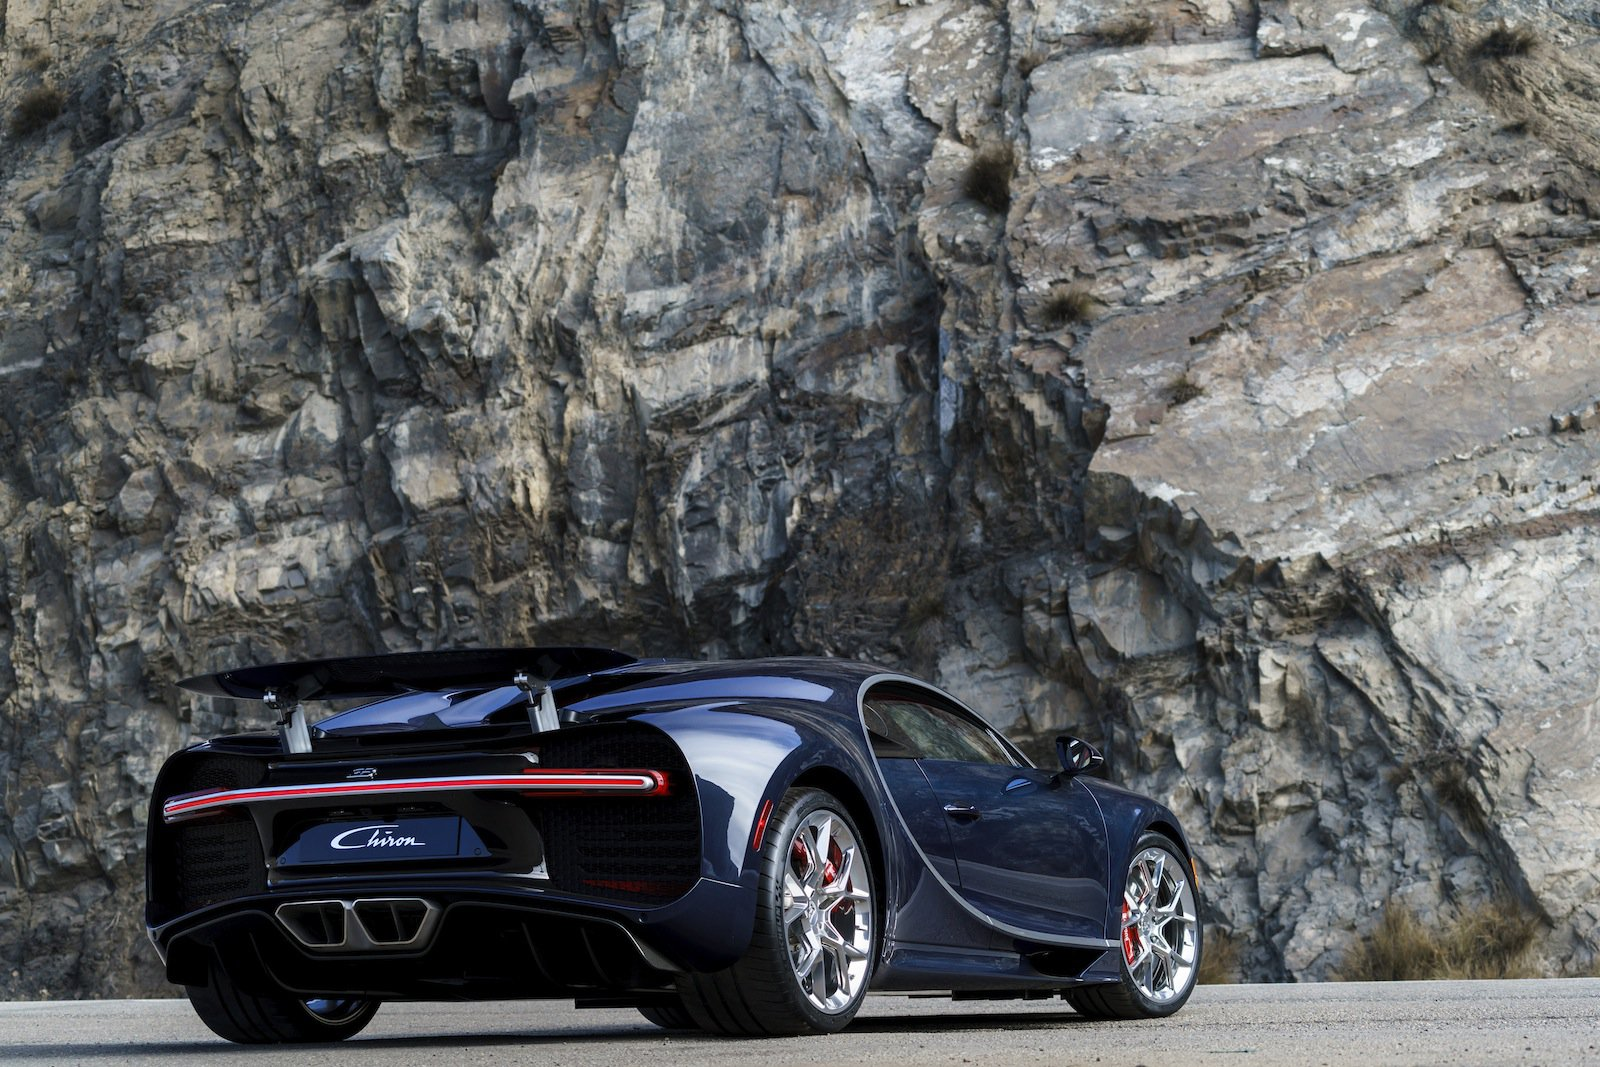 Photo Gallery: Bugatti Chiron Hits Monterey for U.S. Debut